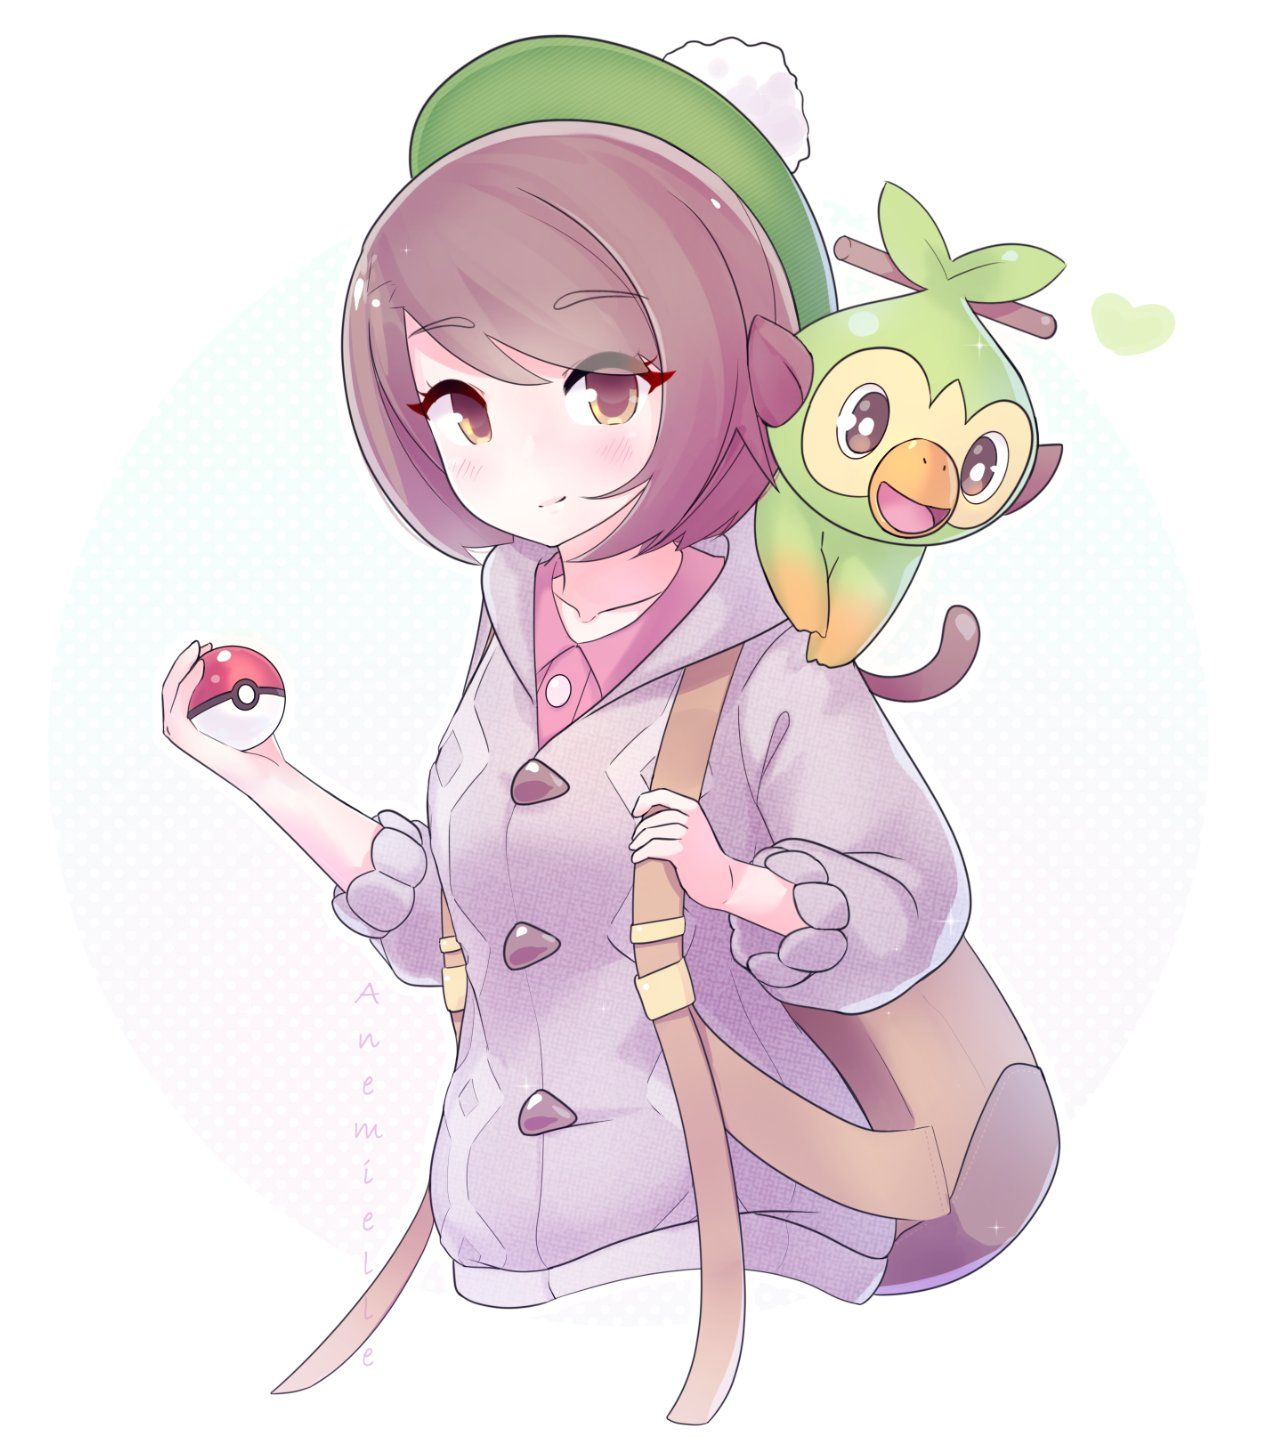 [OC] Pokemon Sword Trainer & Grookey (Merch) pokemon